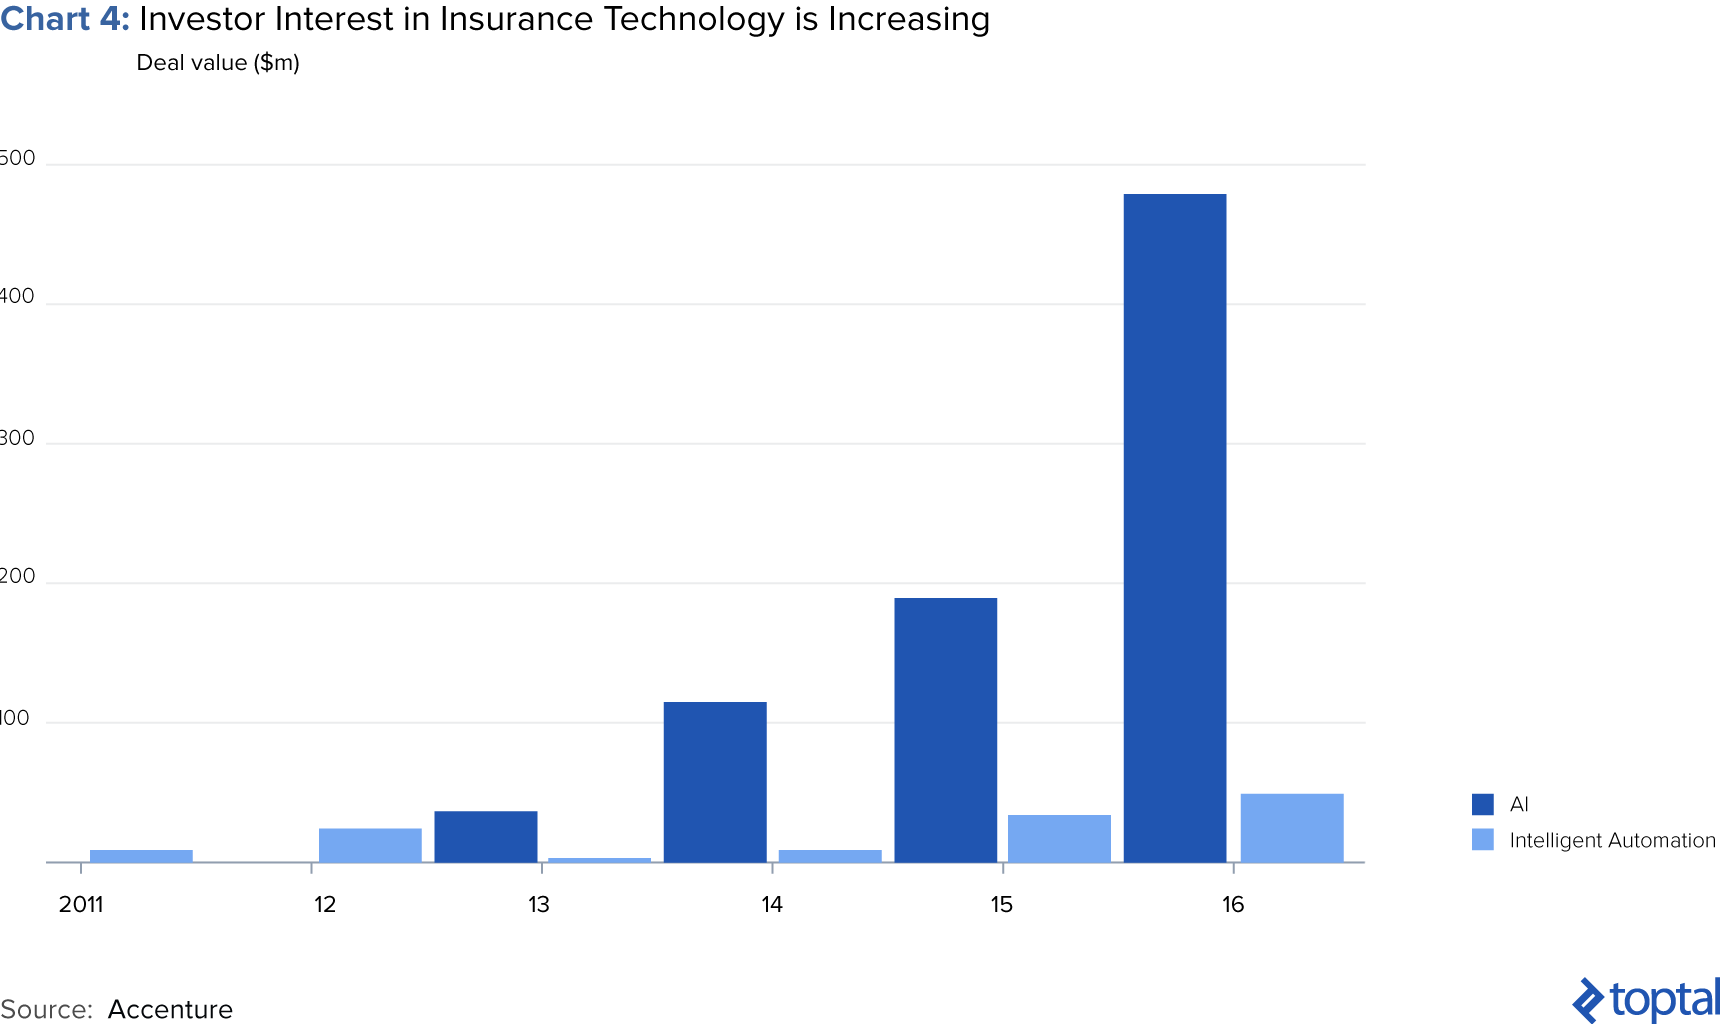 Chart 4: Investor Interest in Insurance Technology Is Increasing